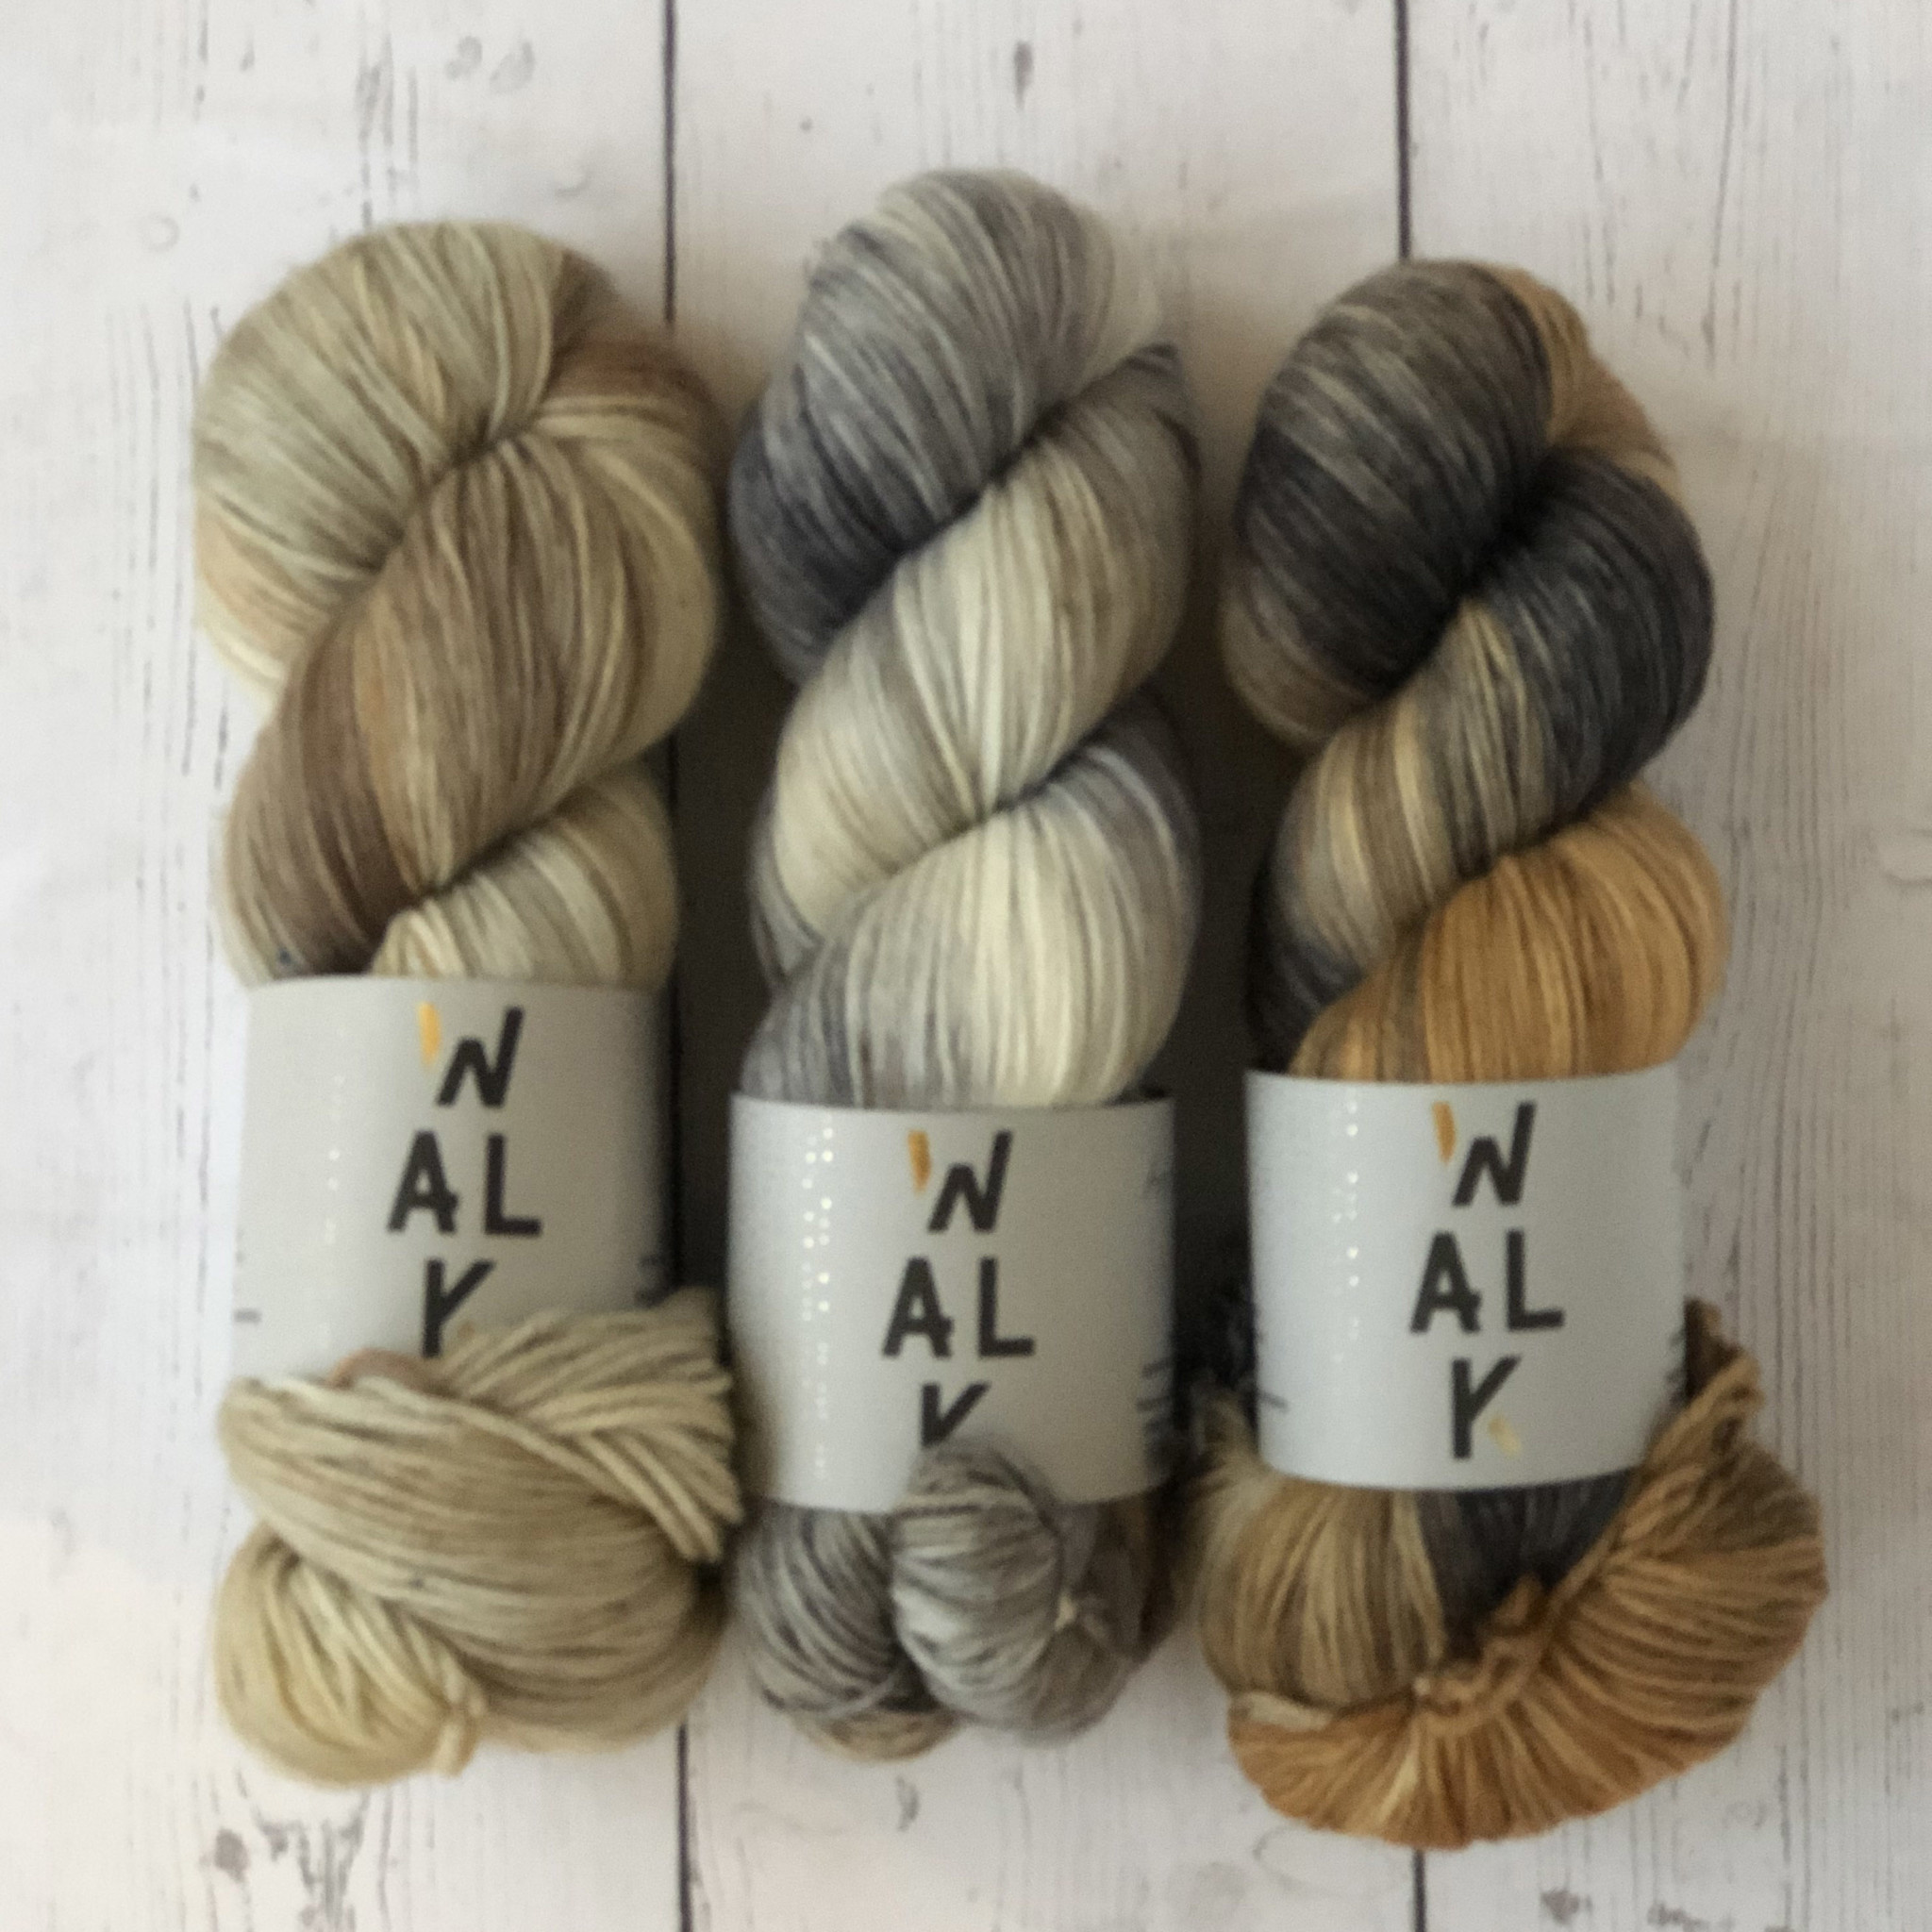 Westknits WK CABLED BLISS - KIT SAND DUNE